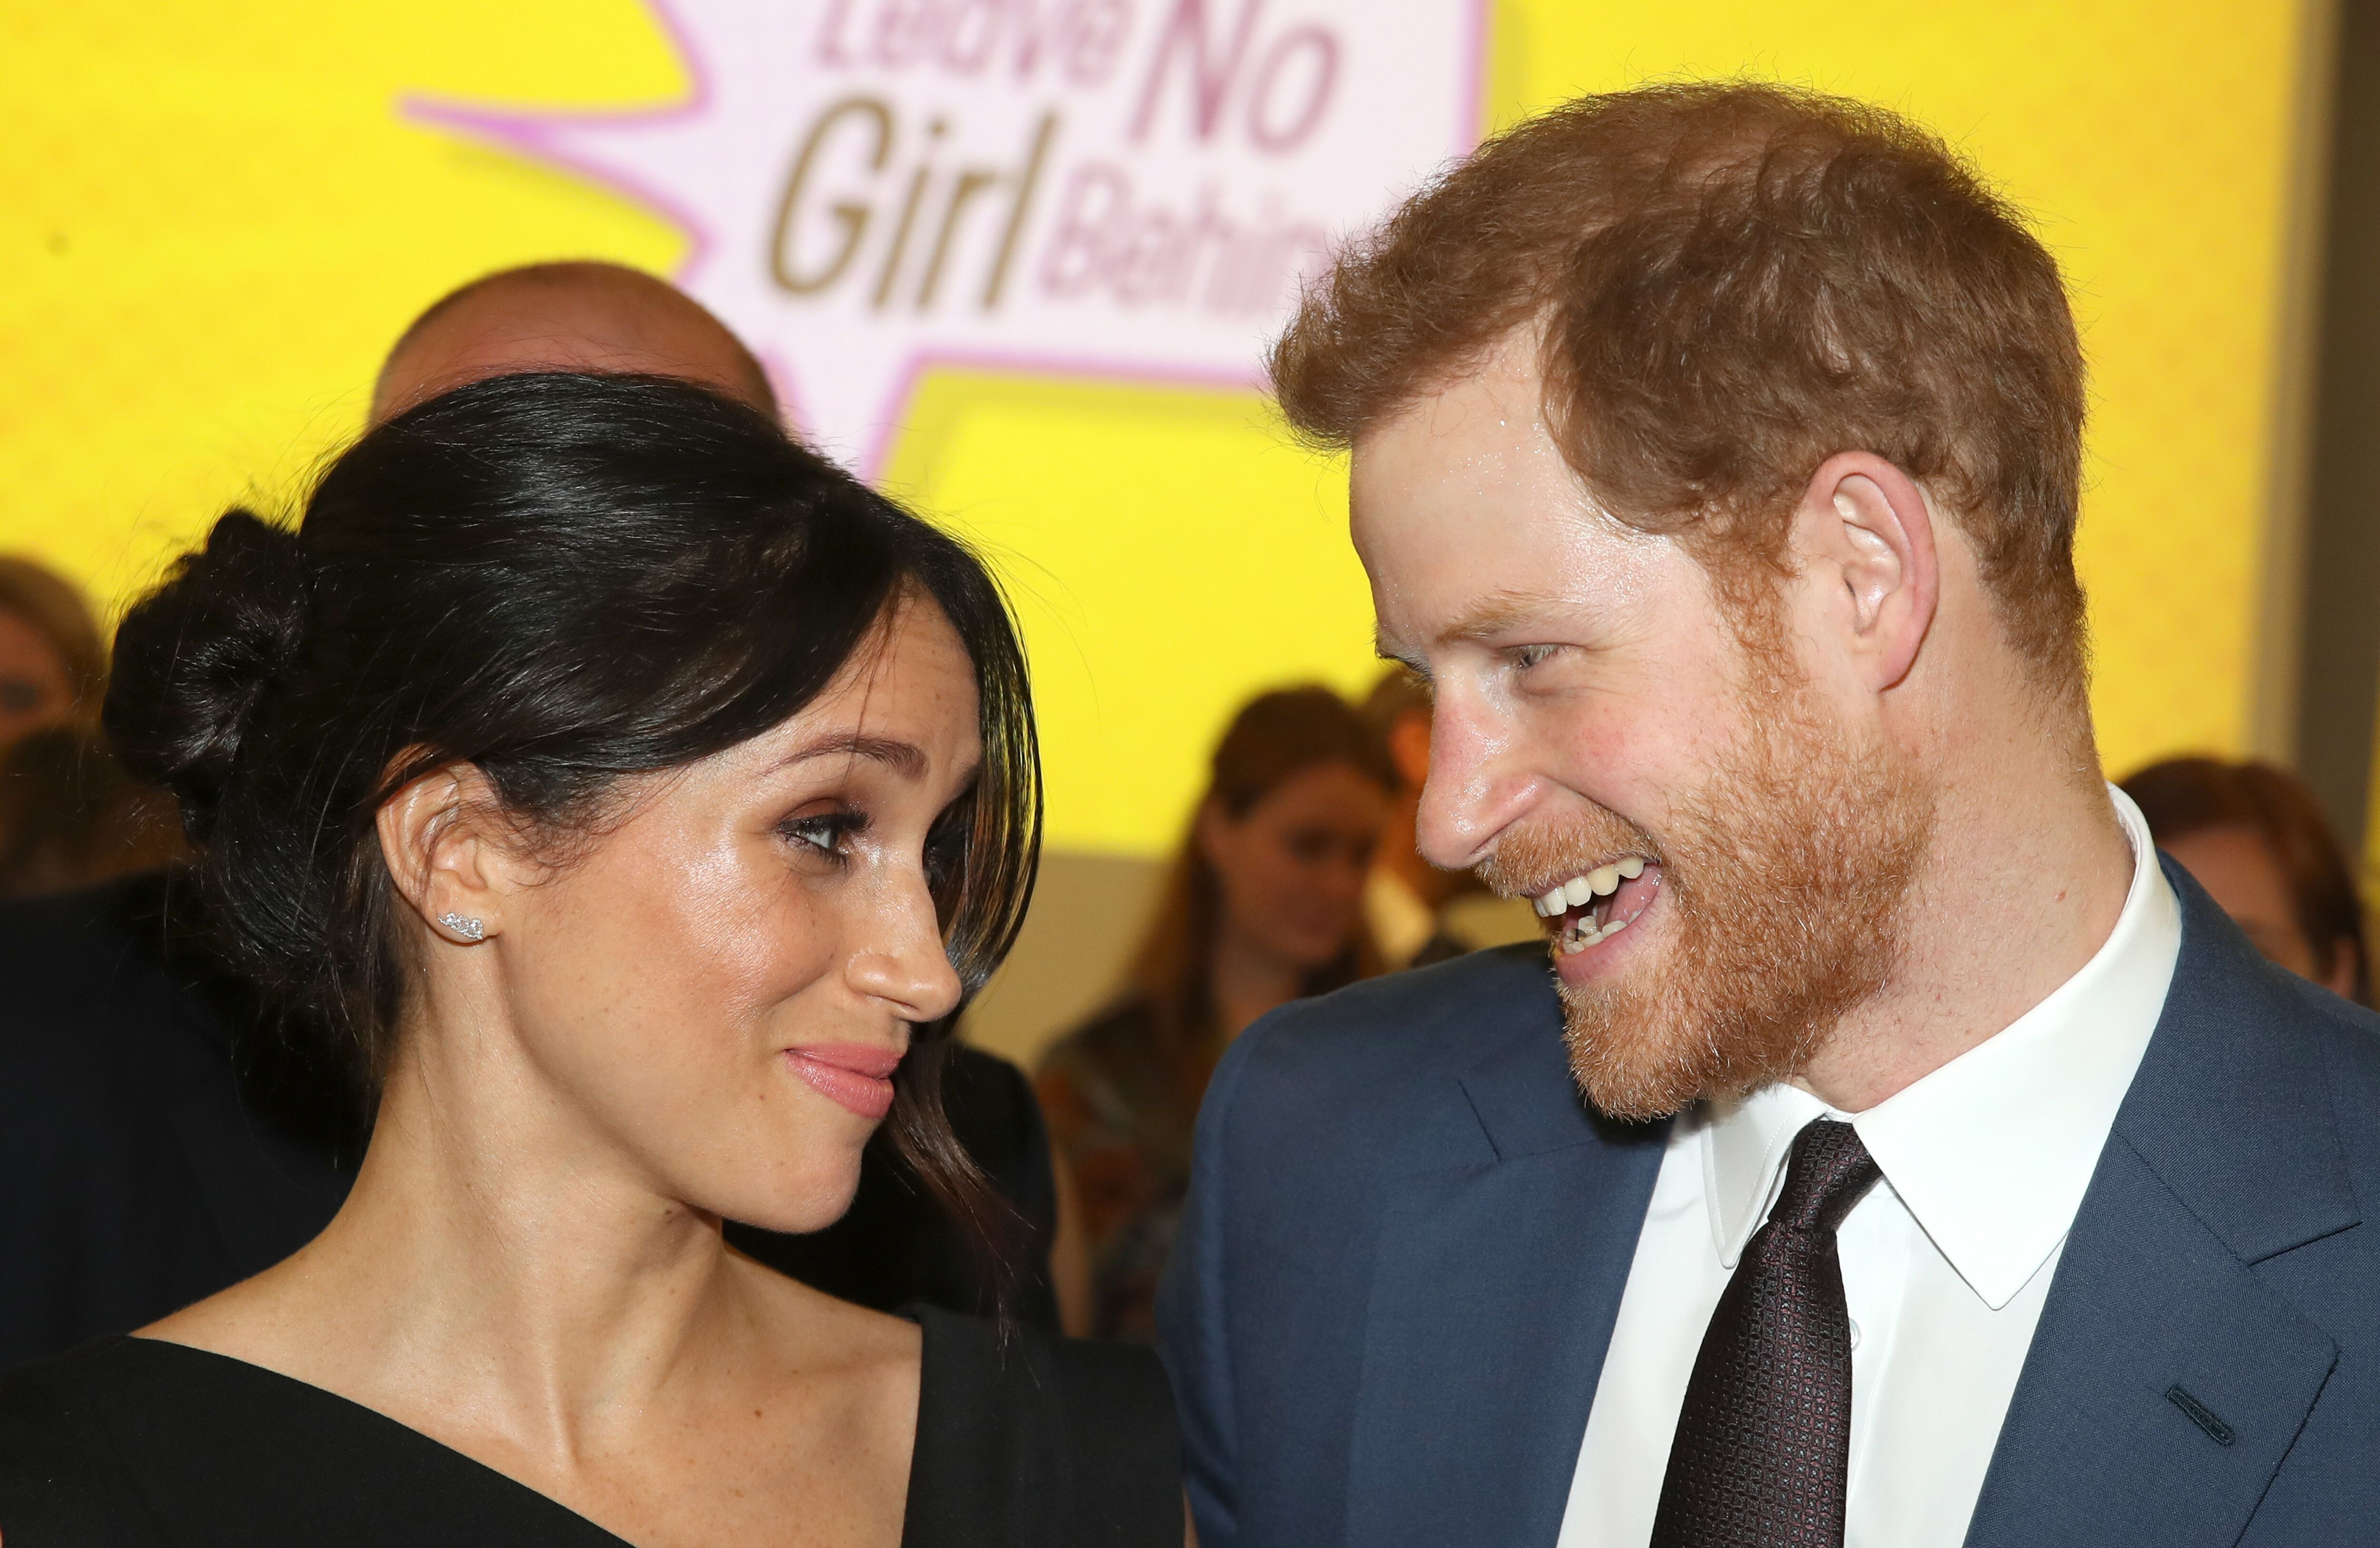 Meghan Markle and Prince Harry attend the Women's Empowerment reception hosted by Foreign Secretary Boris Johnson during the Commonwealth Heads of Government Meeting at the Royal Aeronautical Society | Photo: Getty Images